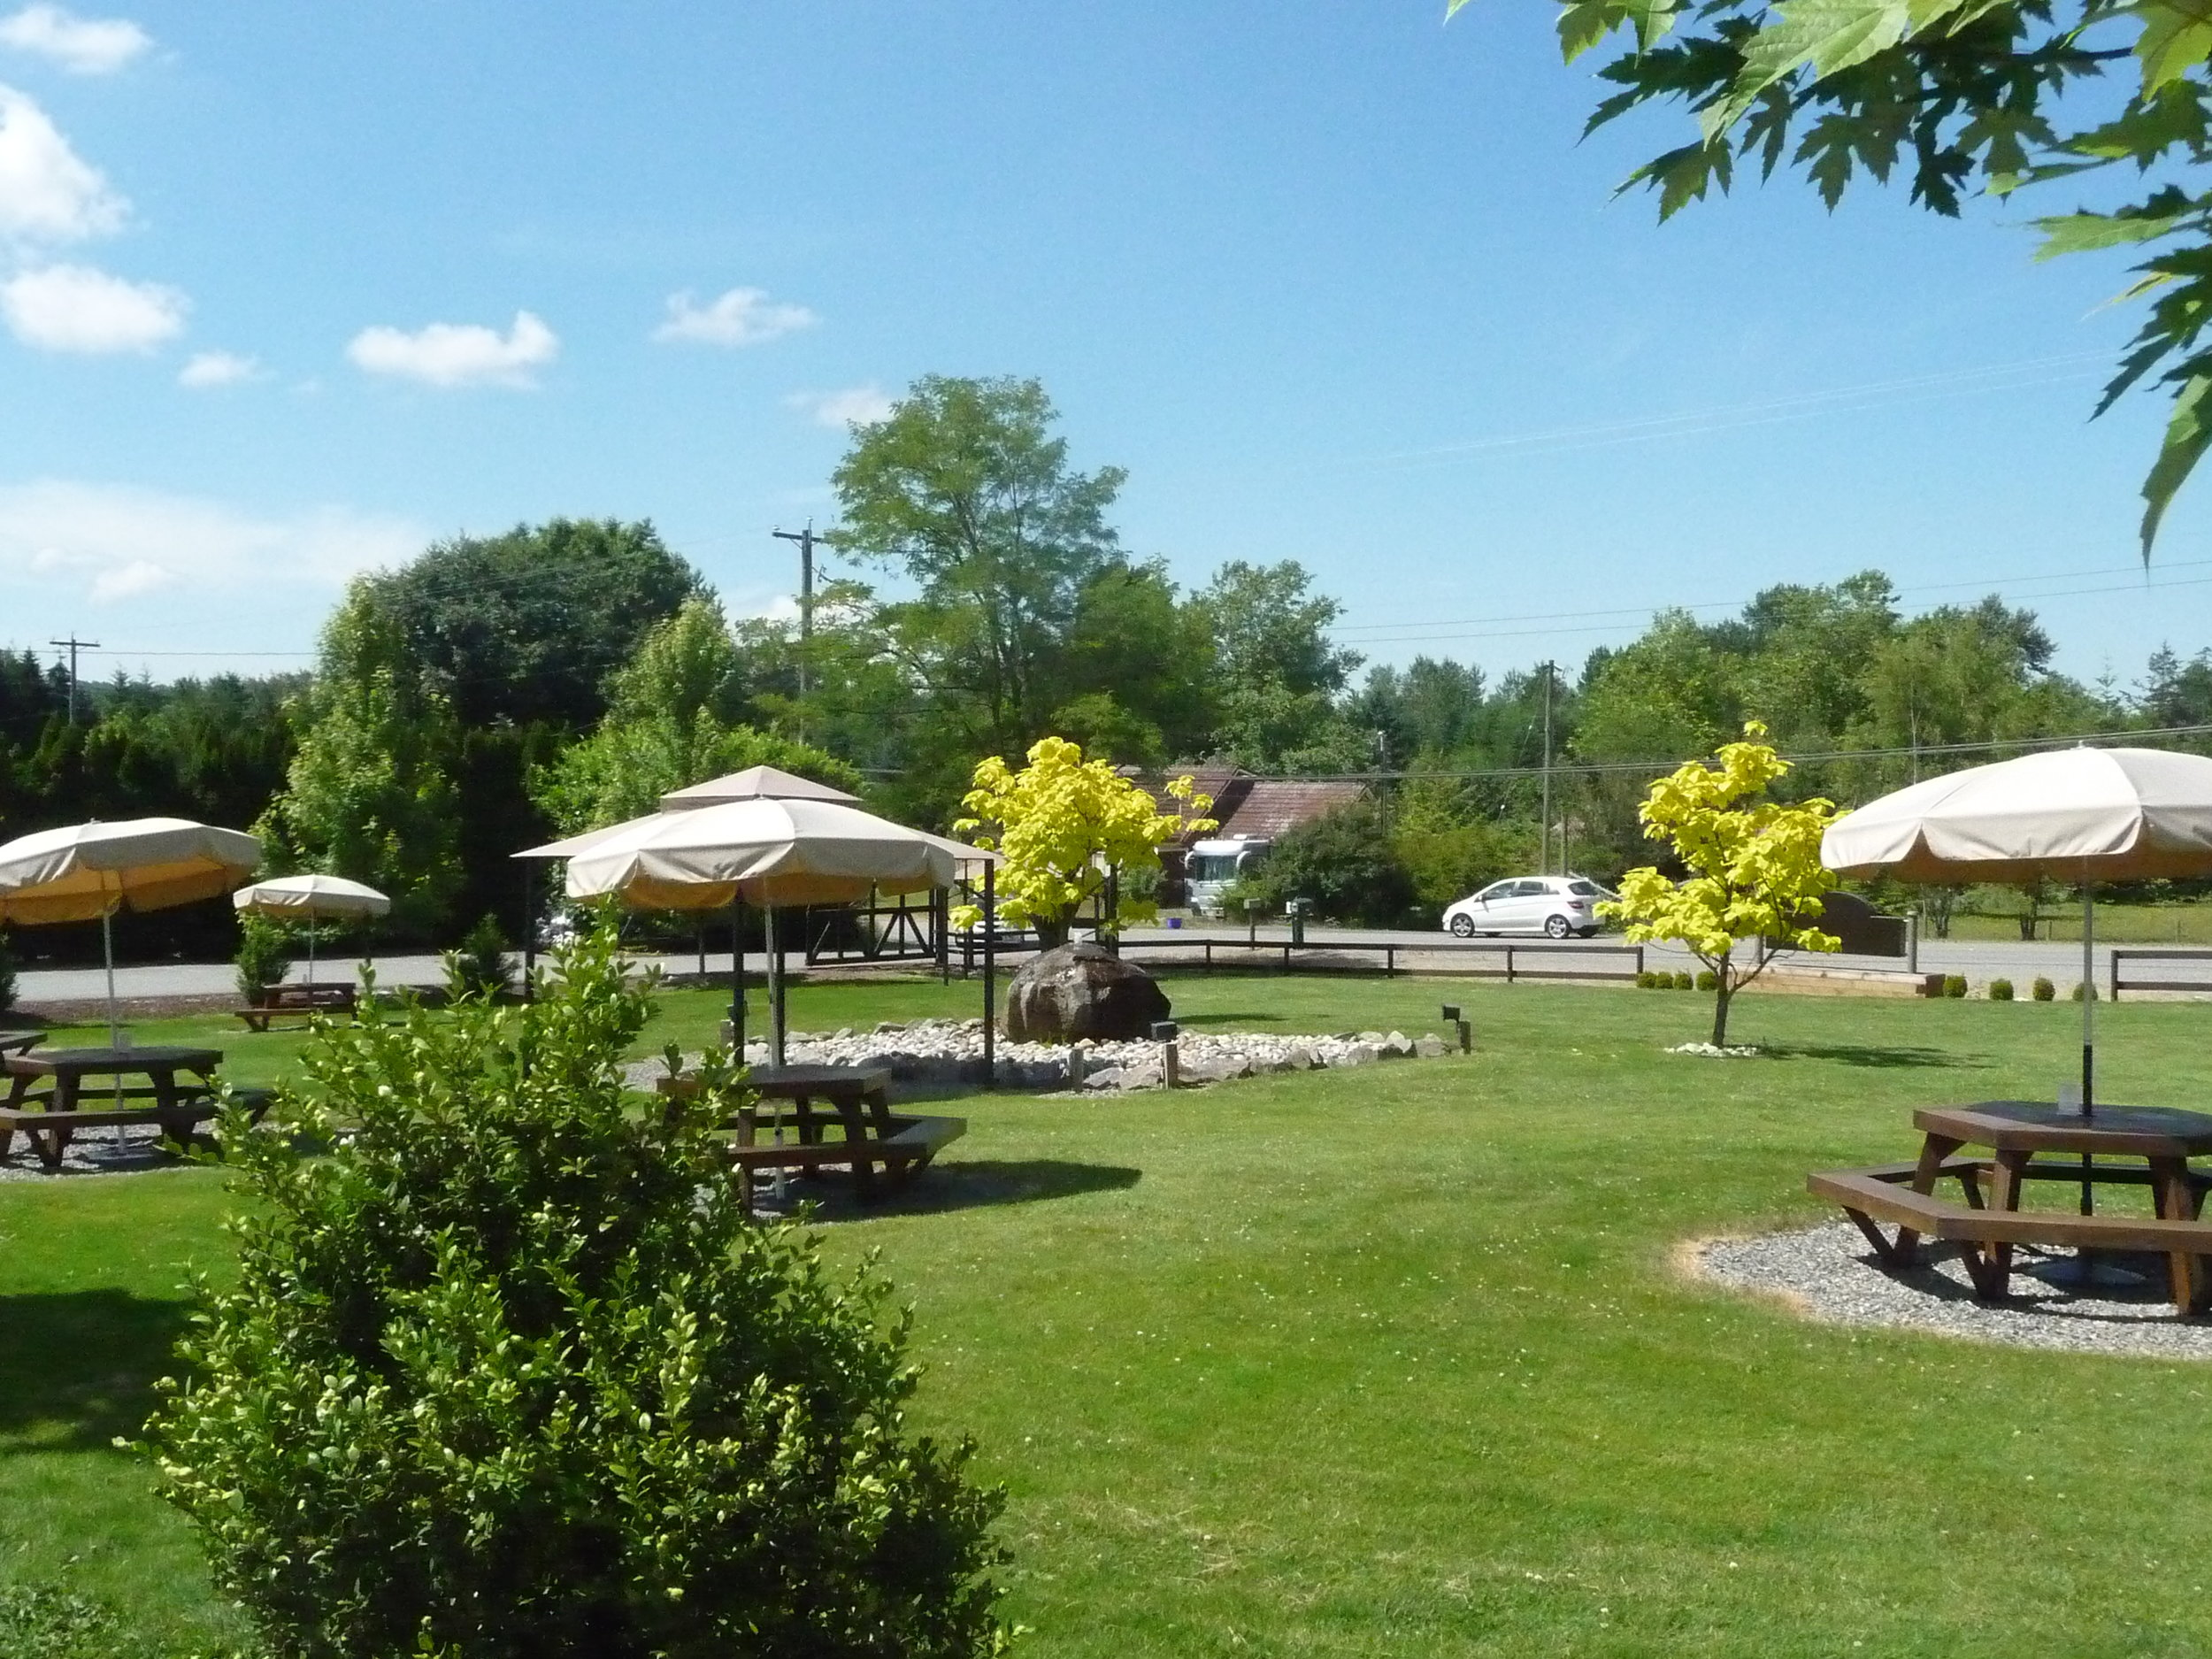 Inviting picnic area out front of Chaberton Estate Winery to enjoy a glass or bottle. Chaberton also has The Bacchus Bistro on-site.